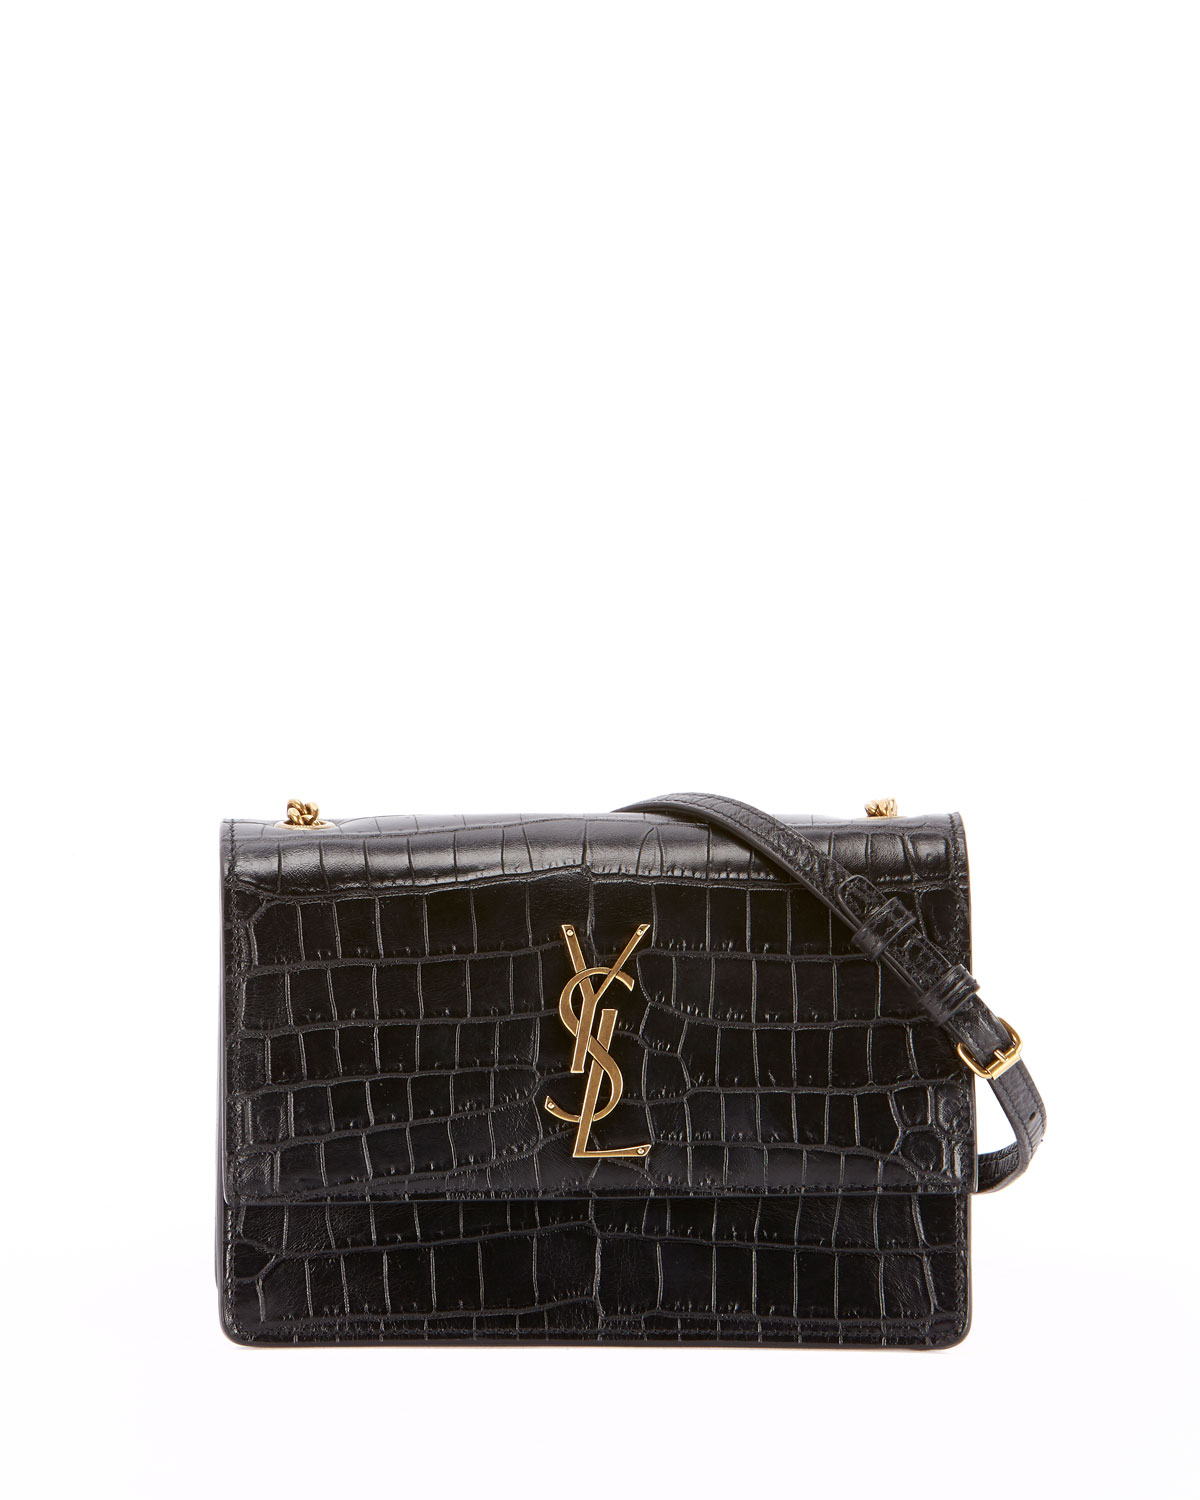 244b0a78d Ysl Sunset Small Bag Review | Stanford Center for Opportunity Policy ...